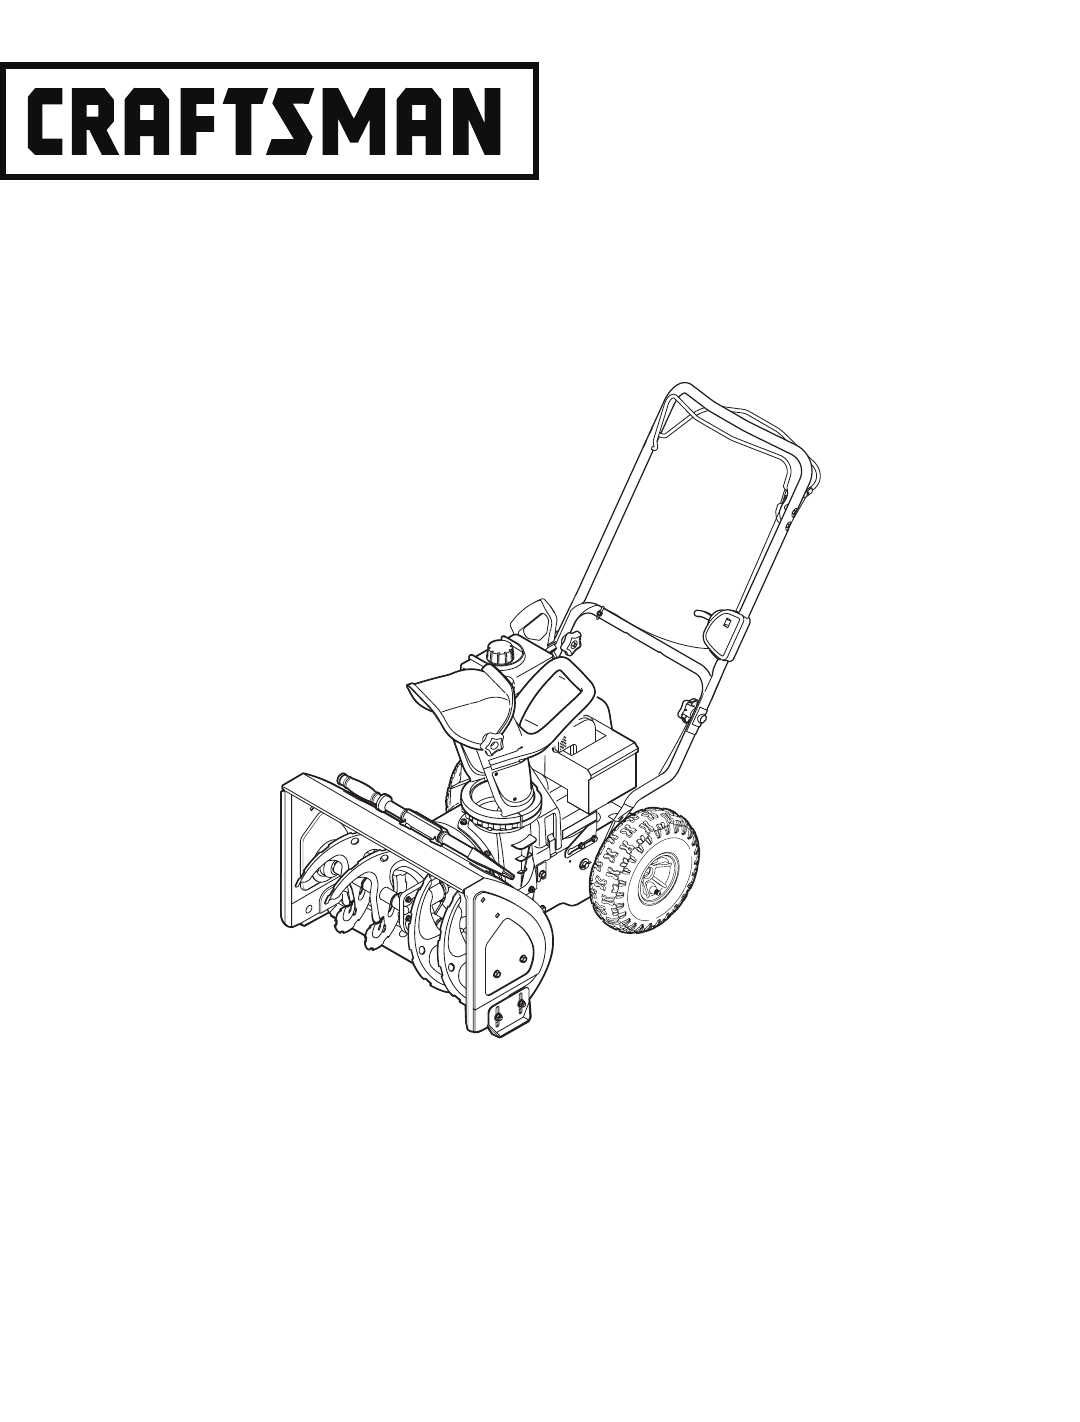 Craftsman Snow Blower 247.88455.1 User Guide